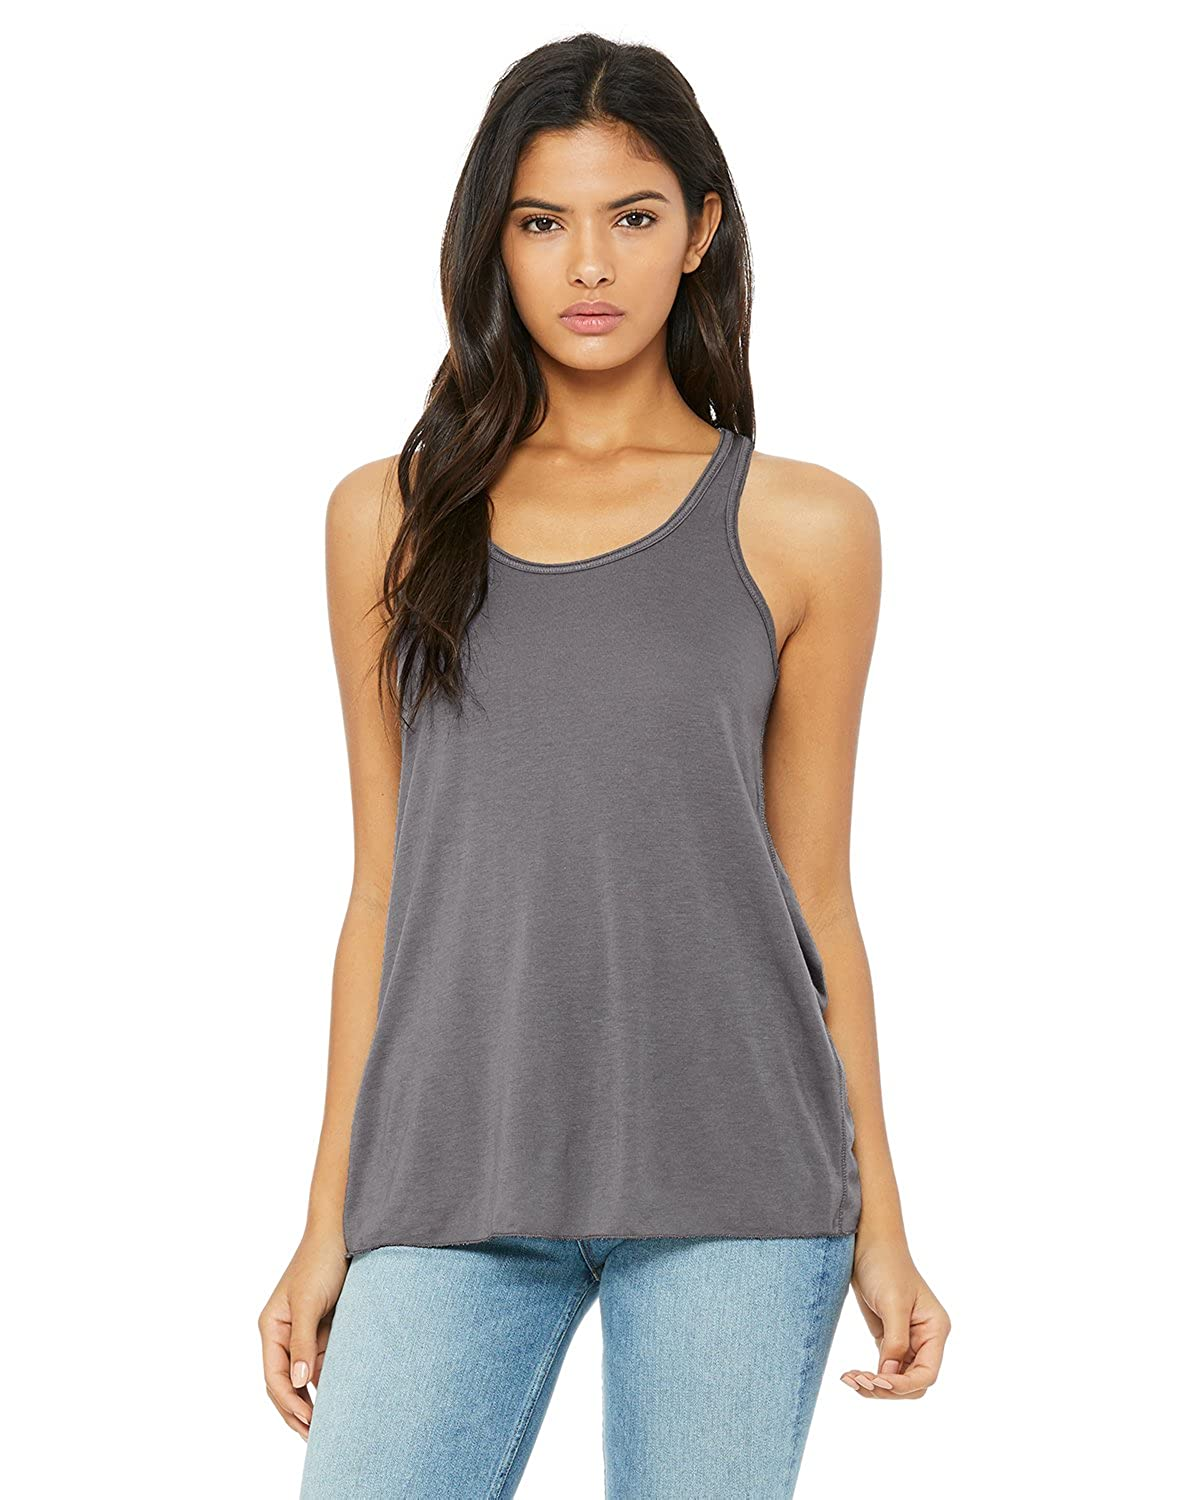 d1672d4ed2 Bella Ladies Flowy Racerback Tank at Amazon Women's Clothing store: